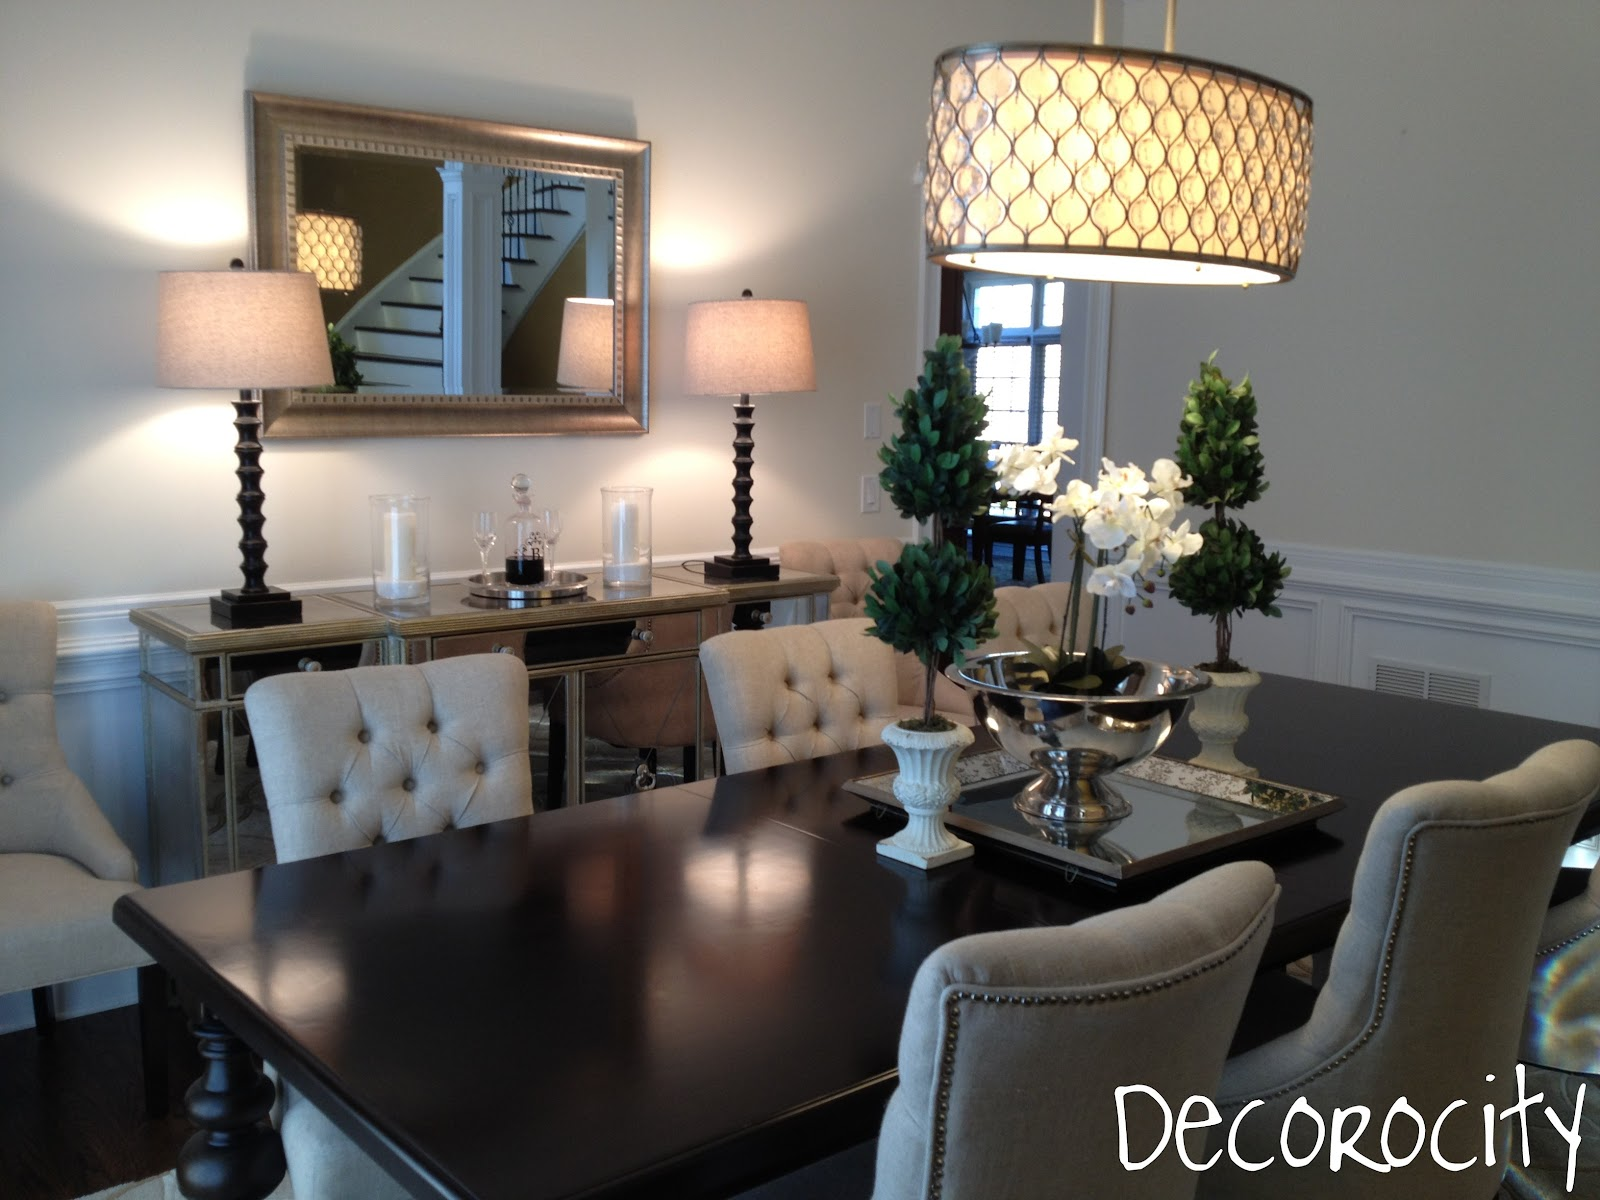 Decorocity update dining room wall color - Dining room wall colors ...